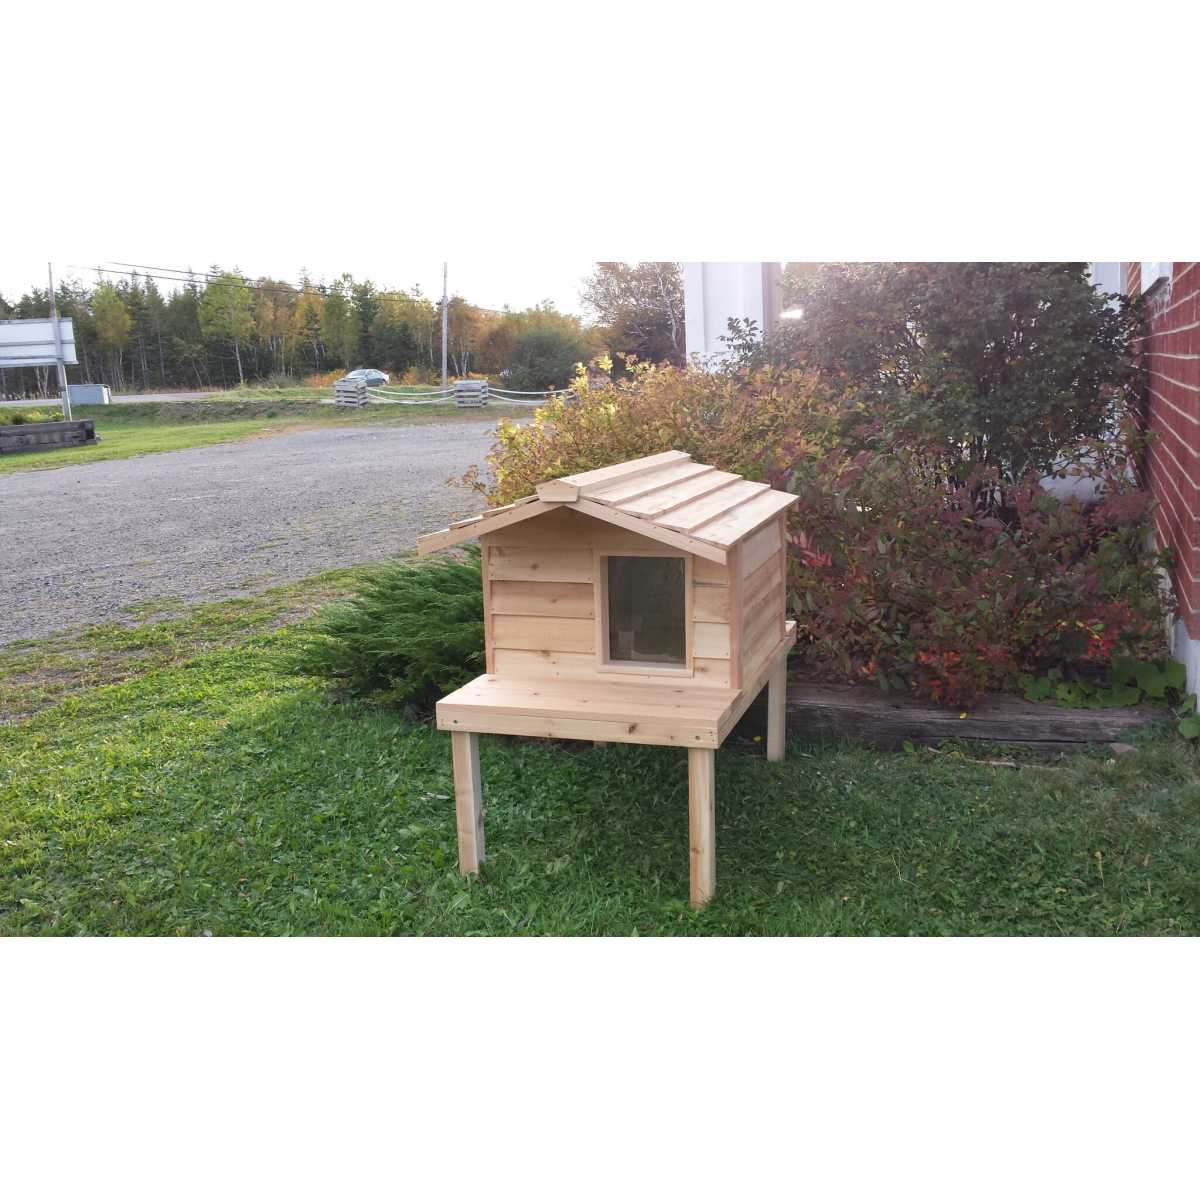 Large Cedar Insulated Cat Or Small Dog House With Deck And